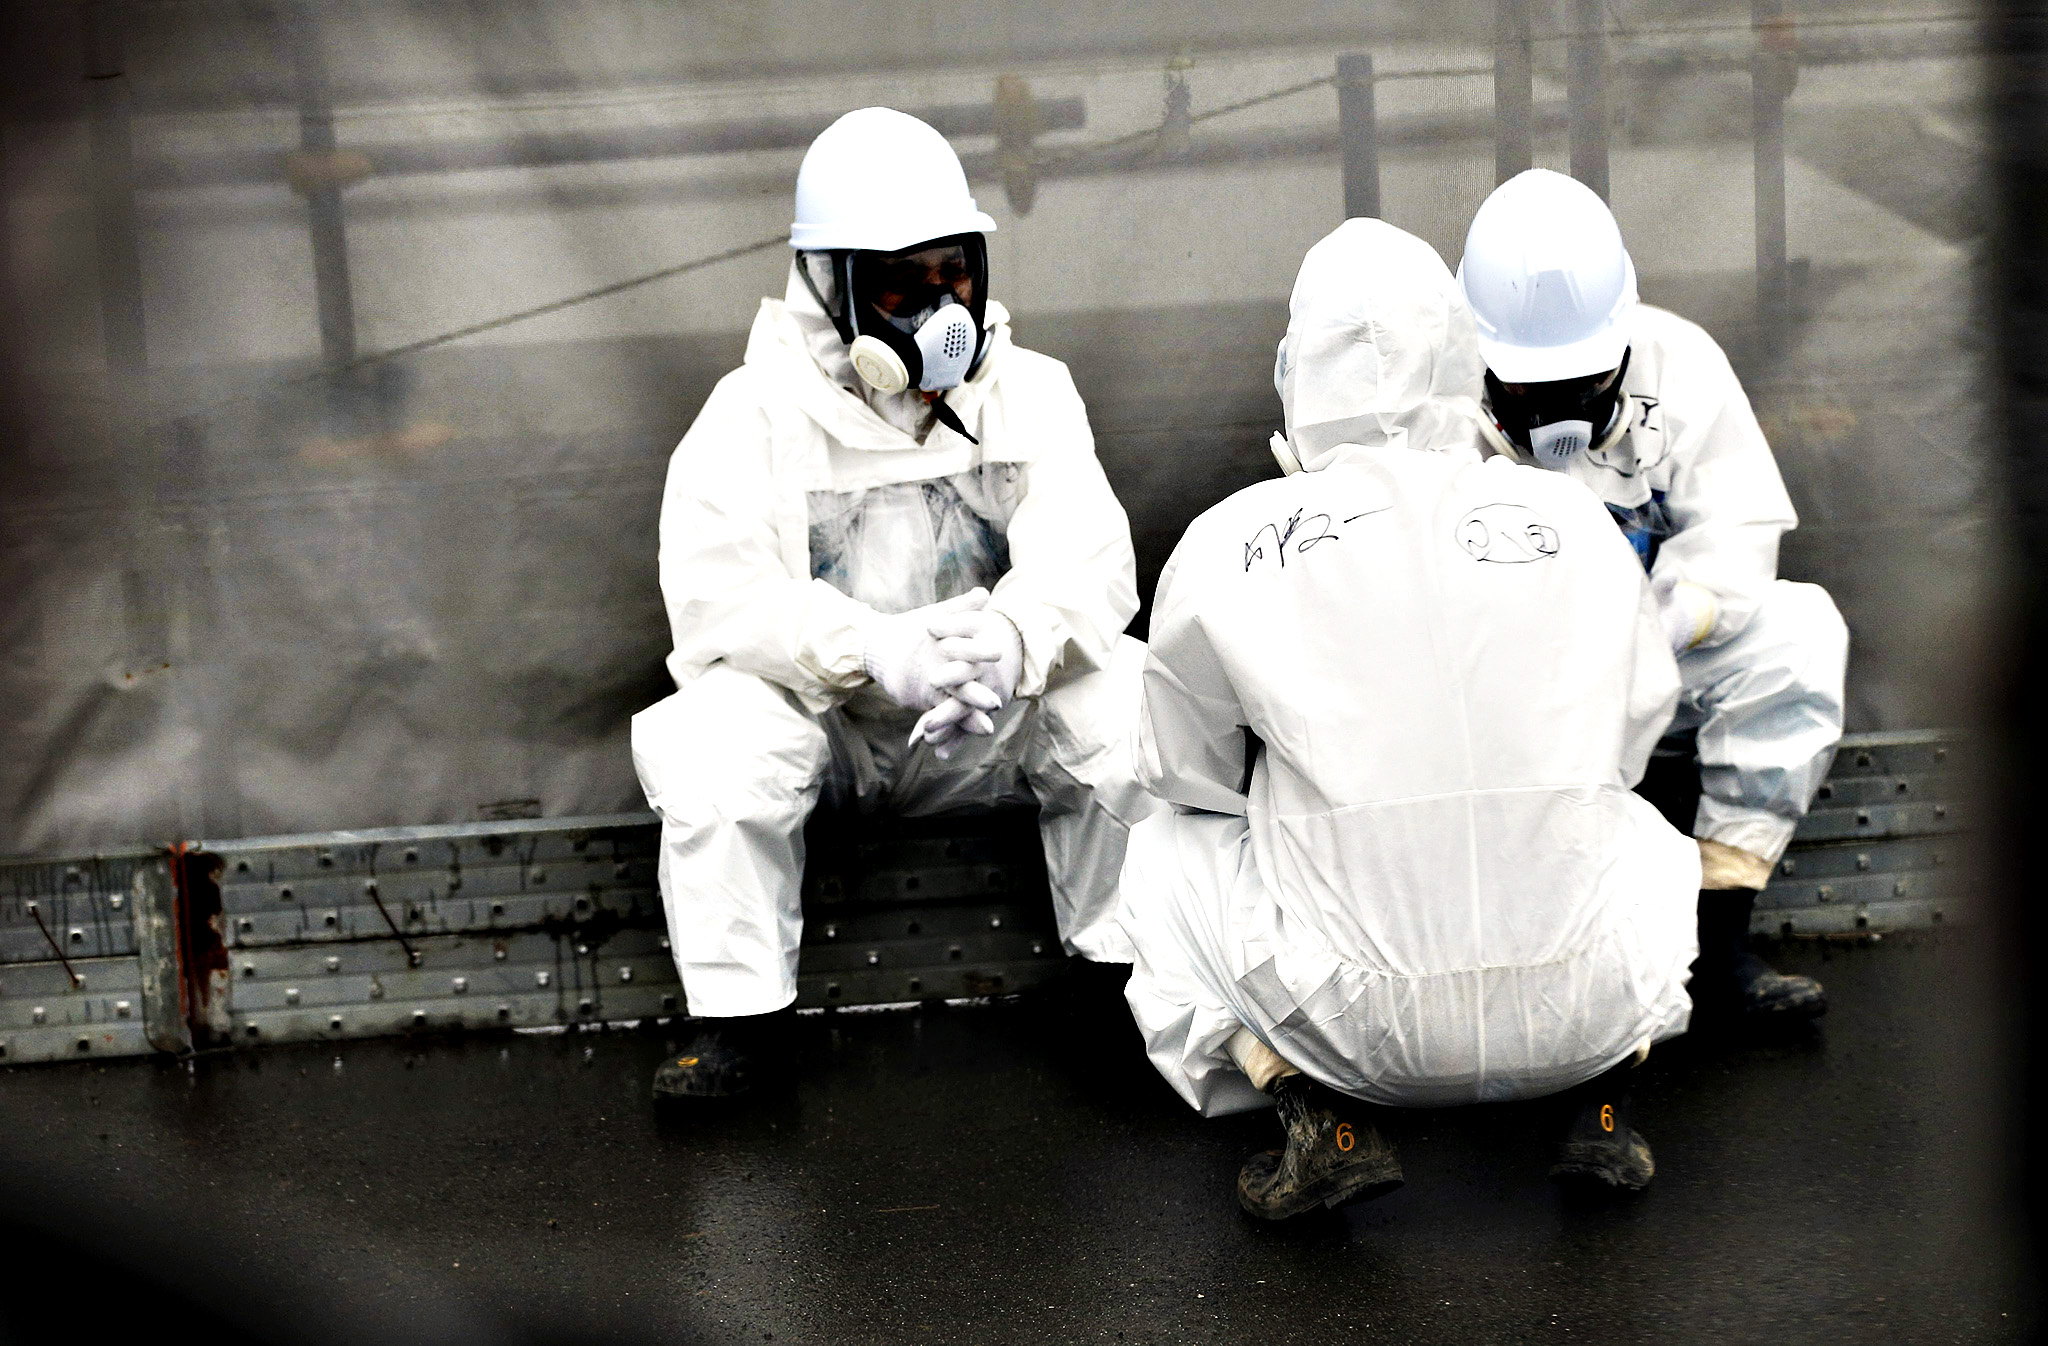 Workers wearing protective gear rest at the Tokyo Electric Power Co. (TEPCO) Fukushima Dai-ichi nuclear power plant, Okuma, Fukushima prefecture, northeastern Japan